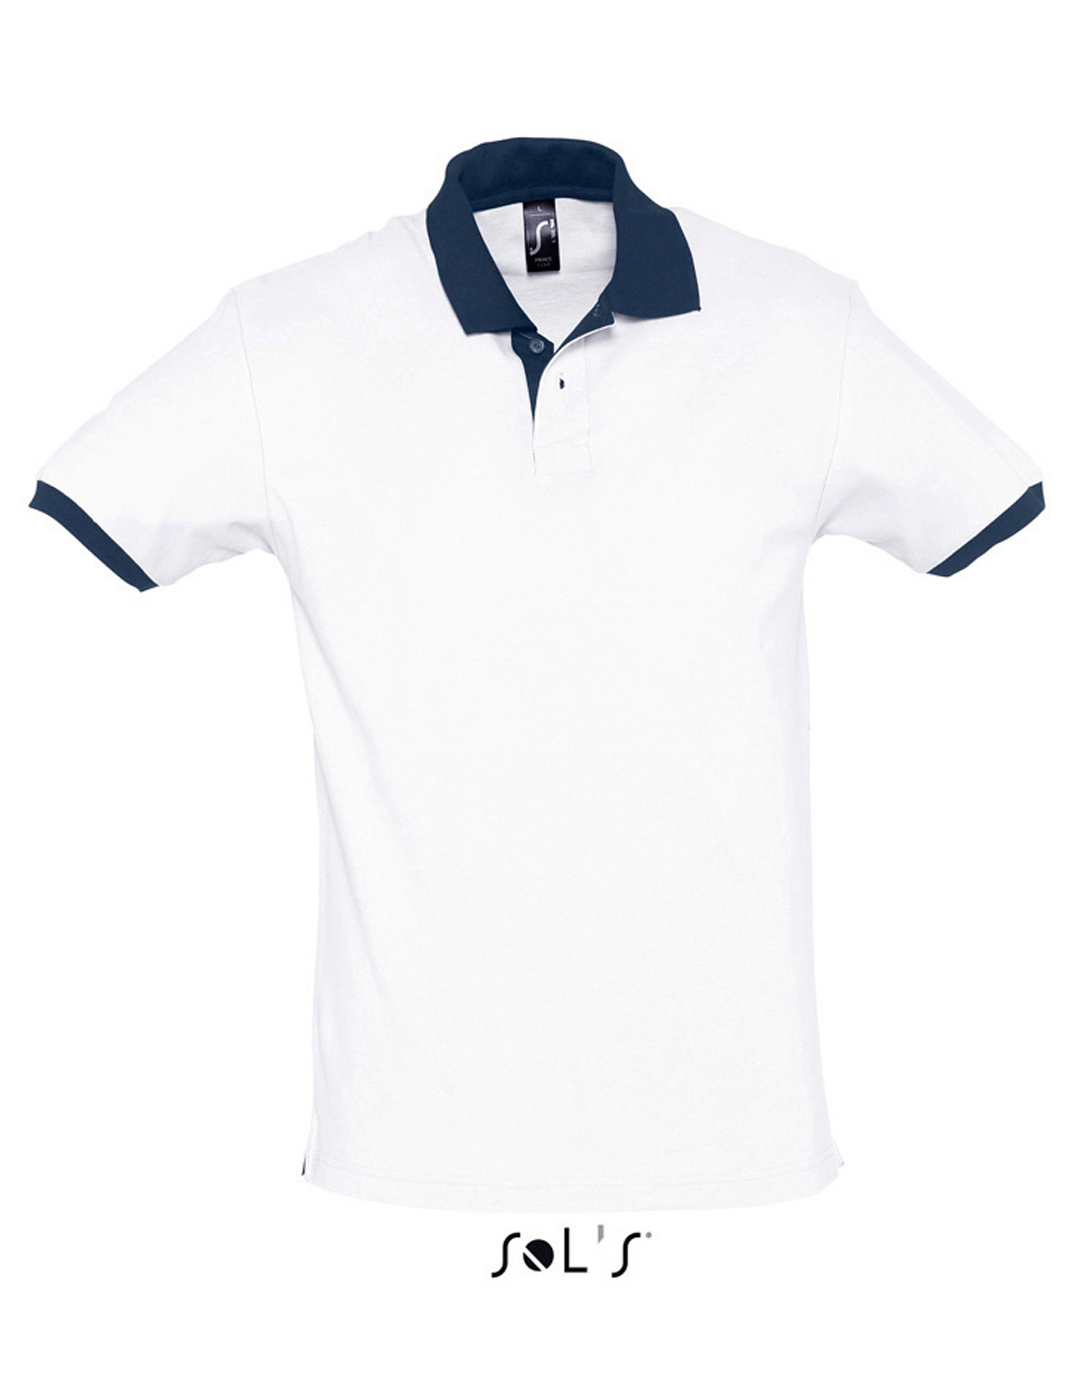 Prince 11369 white french navy a